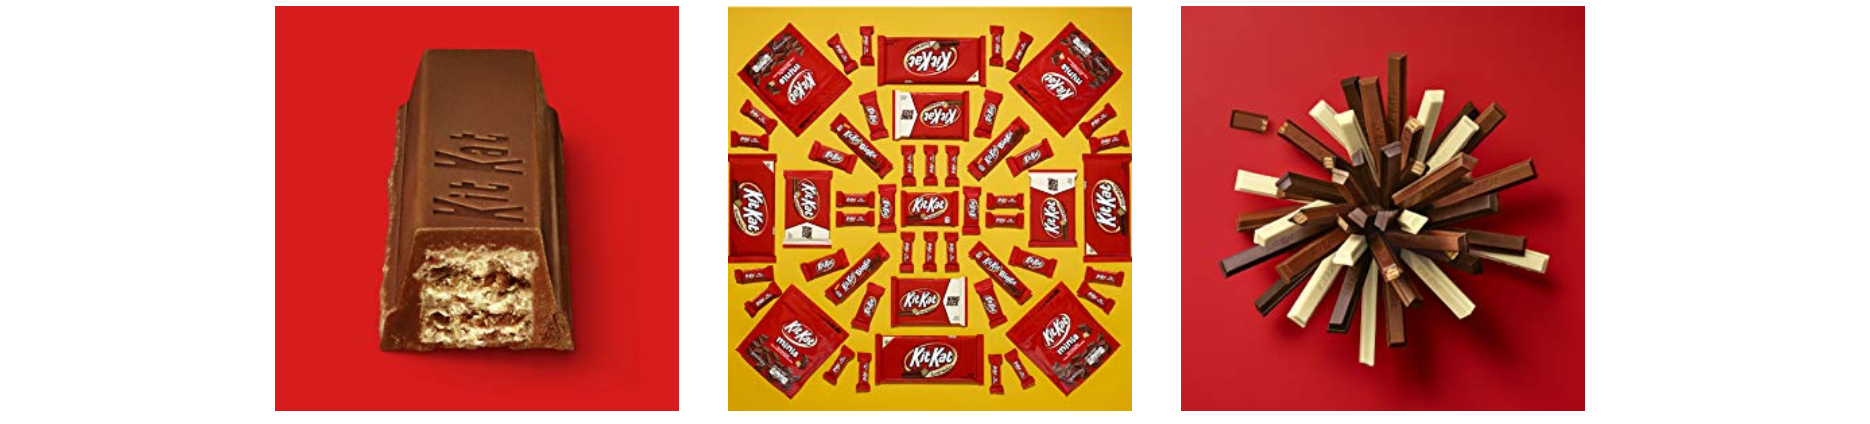 Kit Kat enhanced content visuals